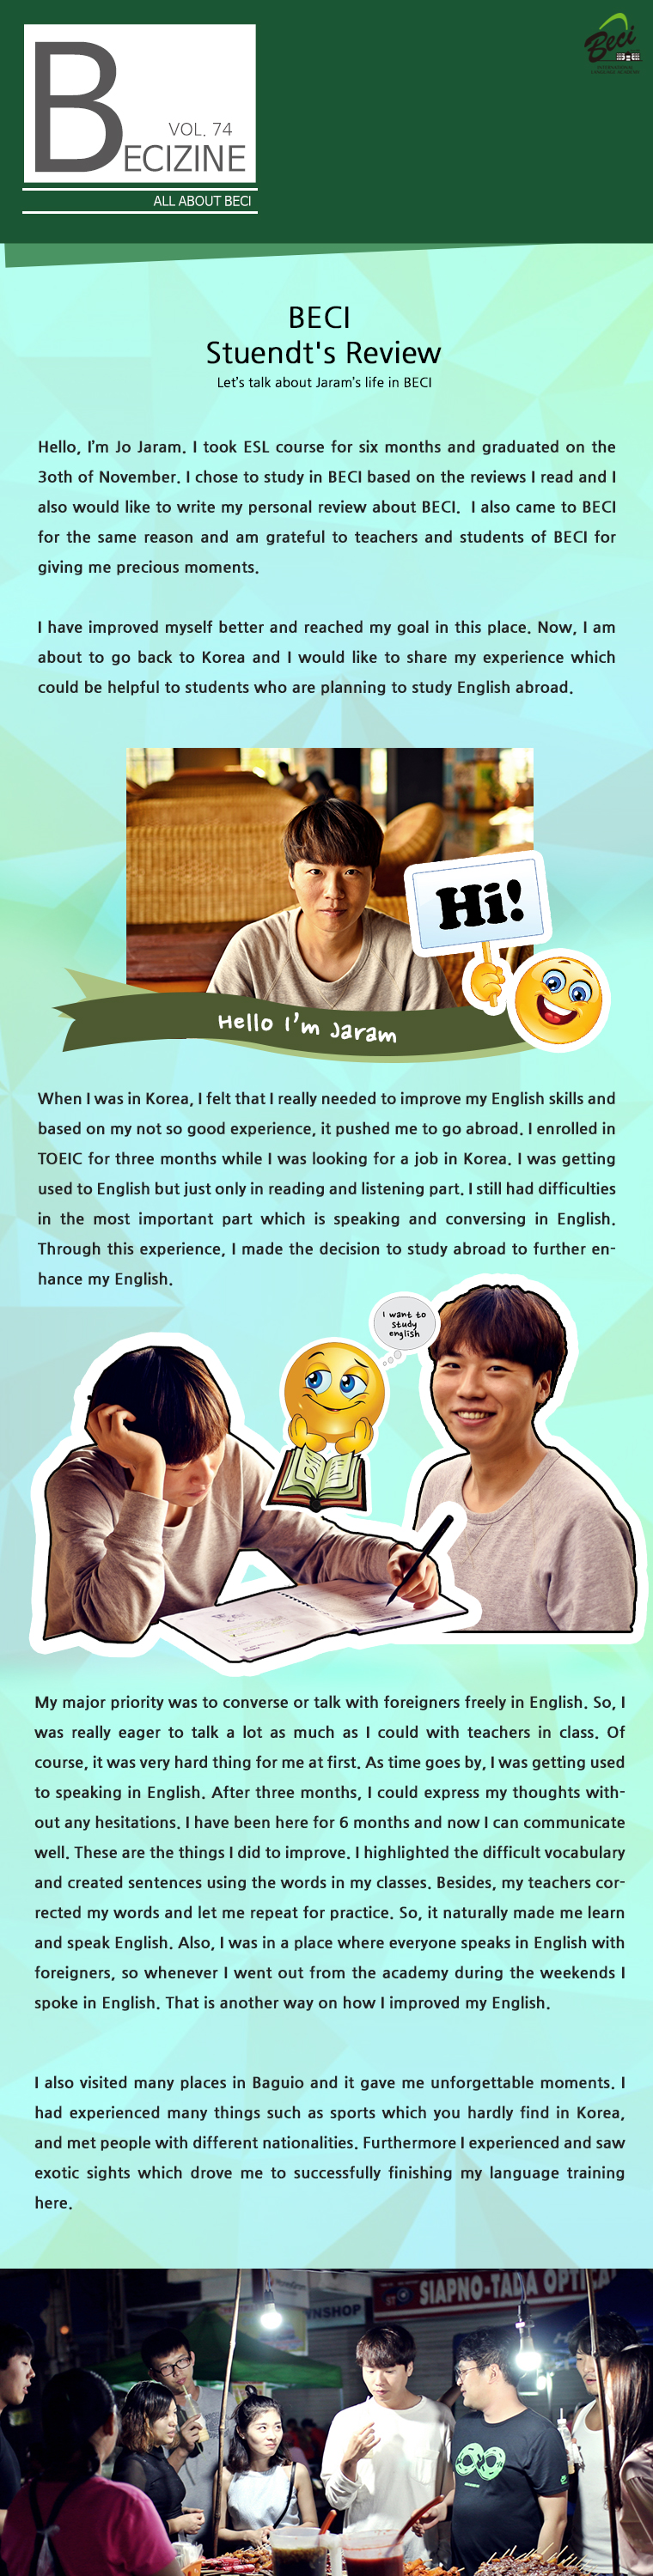 my study plan for korean language Welcome to unit 1 of howtostudykoreancom my little sister told me that she taught you how to read korean that's good, because here in unit 1 you will start learning basic grammar, words and sentence structures.